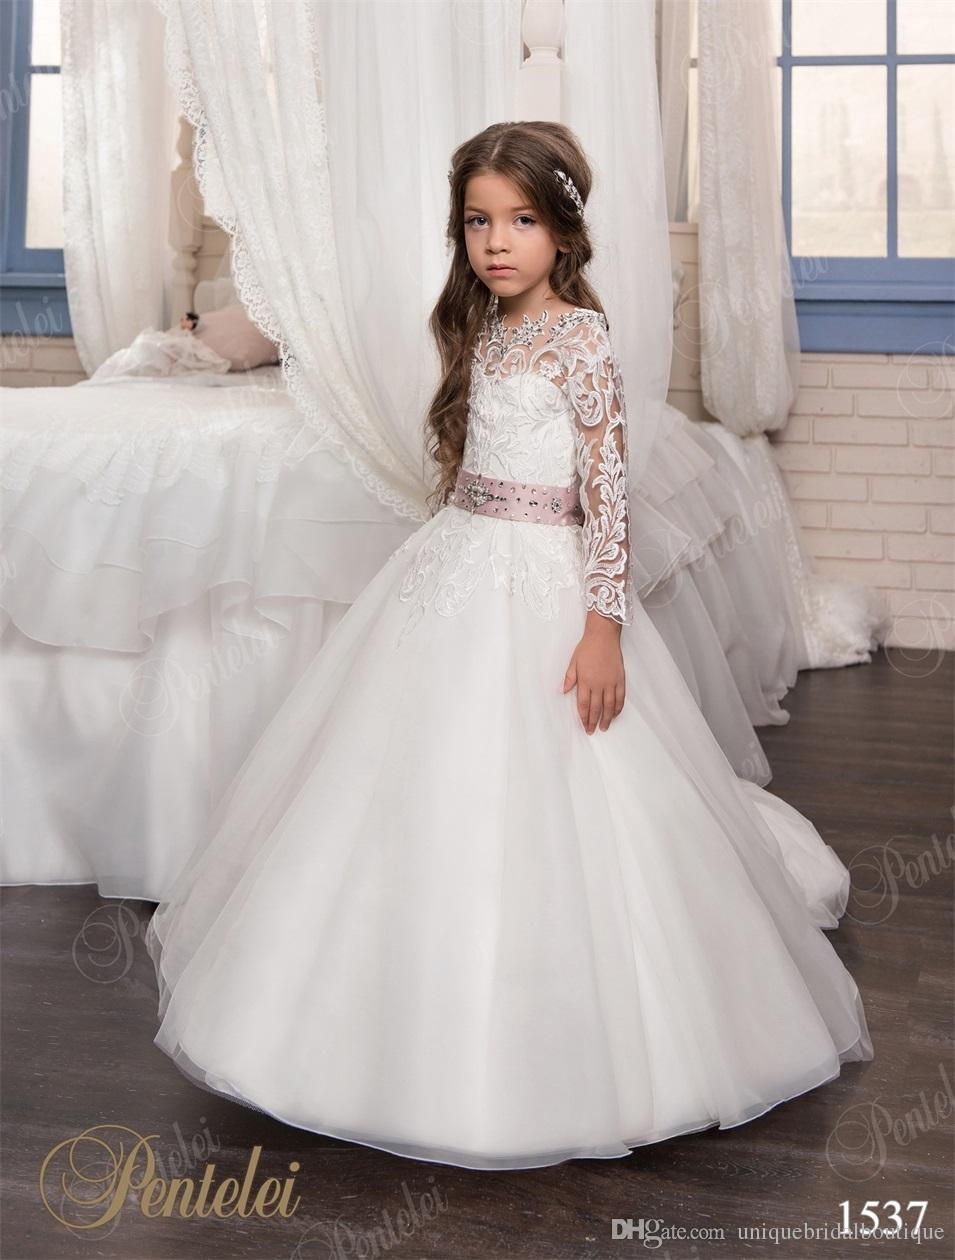 Communion Dresses For Girls 2017 Pentelei With Long Sleeves And ...